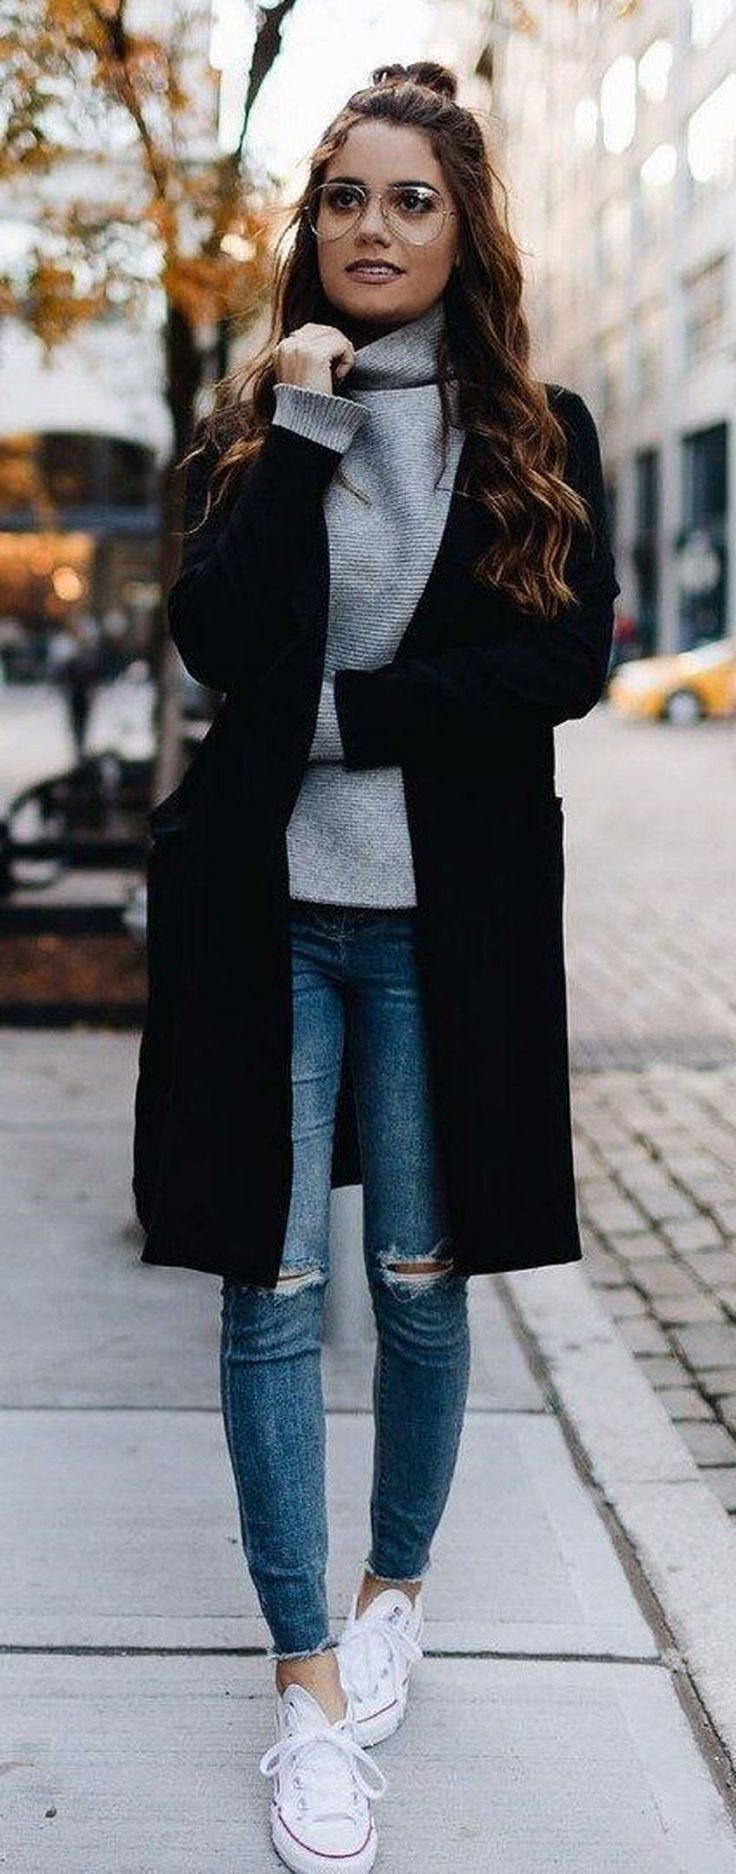 1430 best [Winter] Fashion images on Pinterest